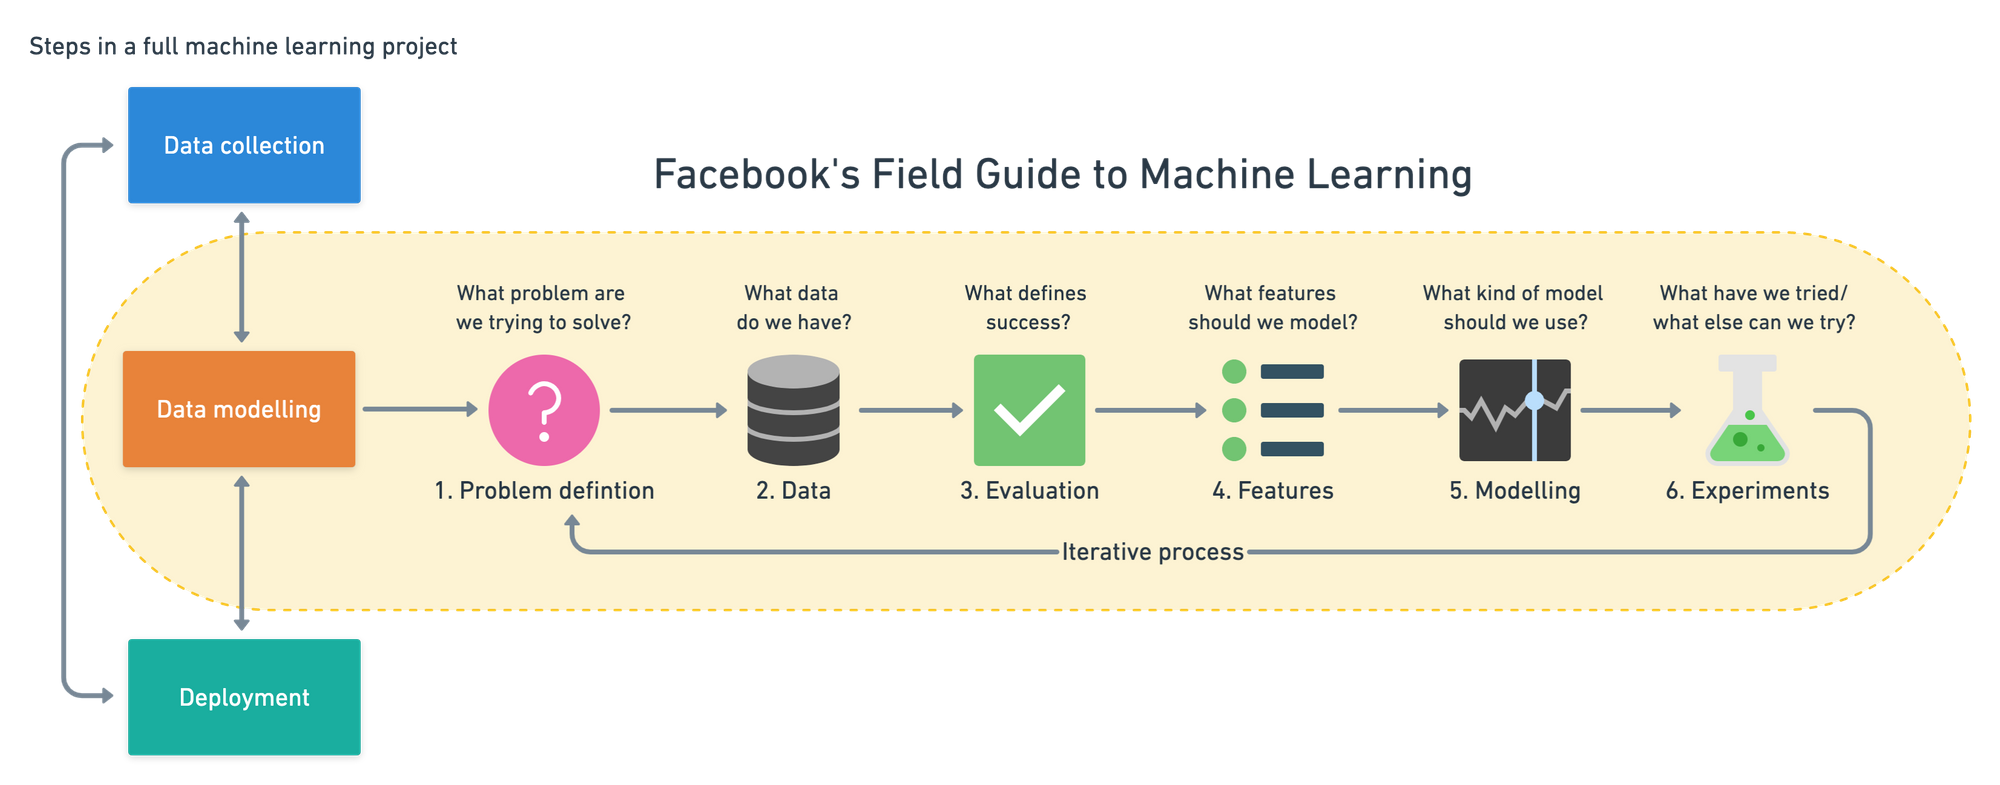 Facebook's six step field guide to machine learning modelling